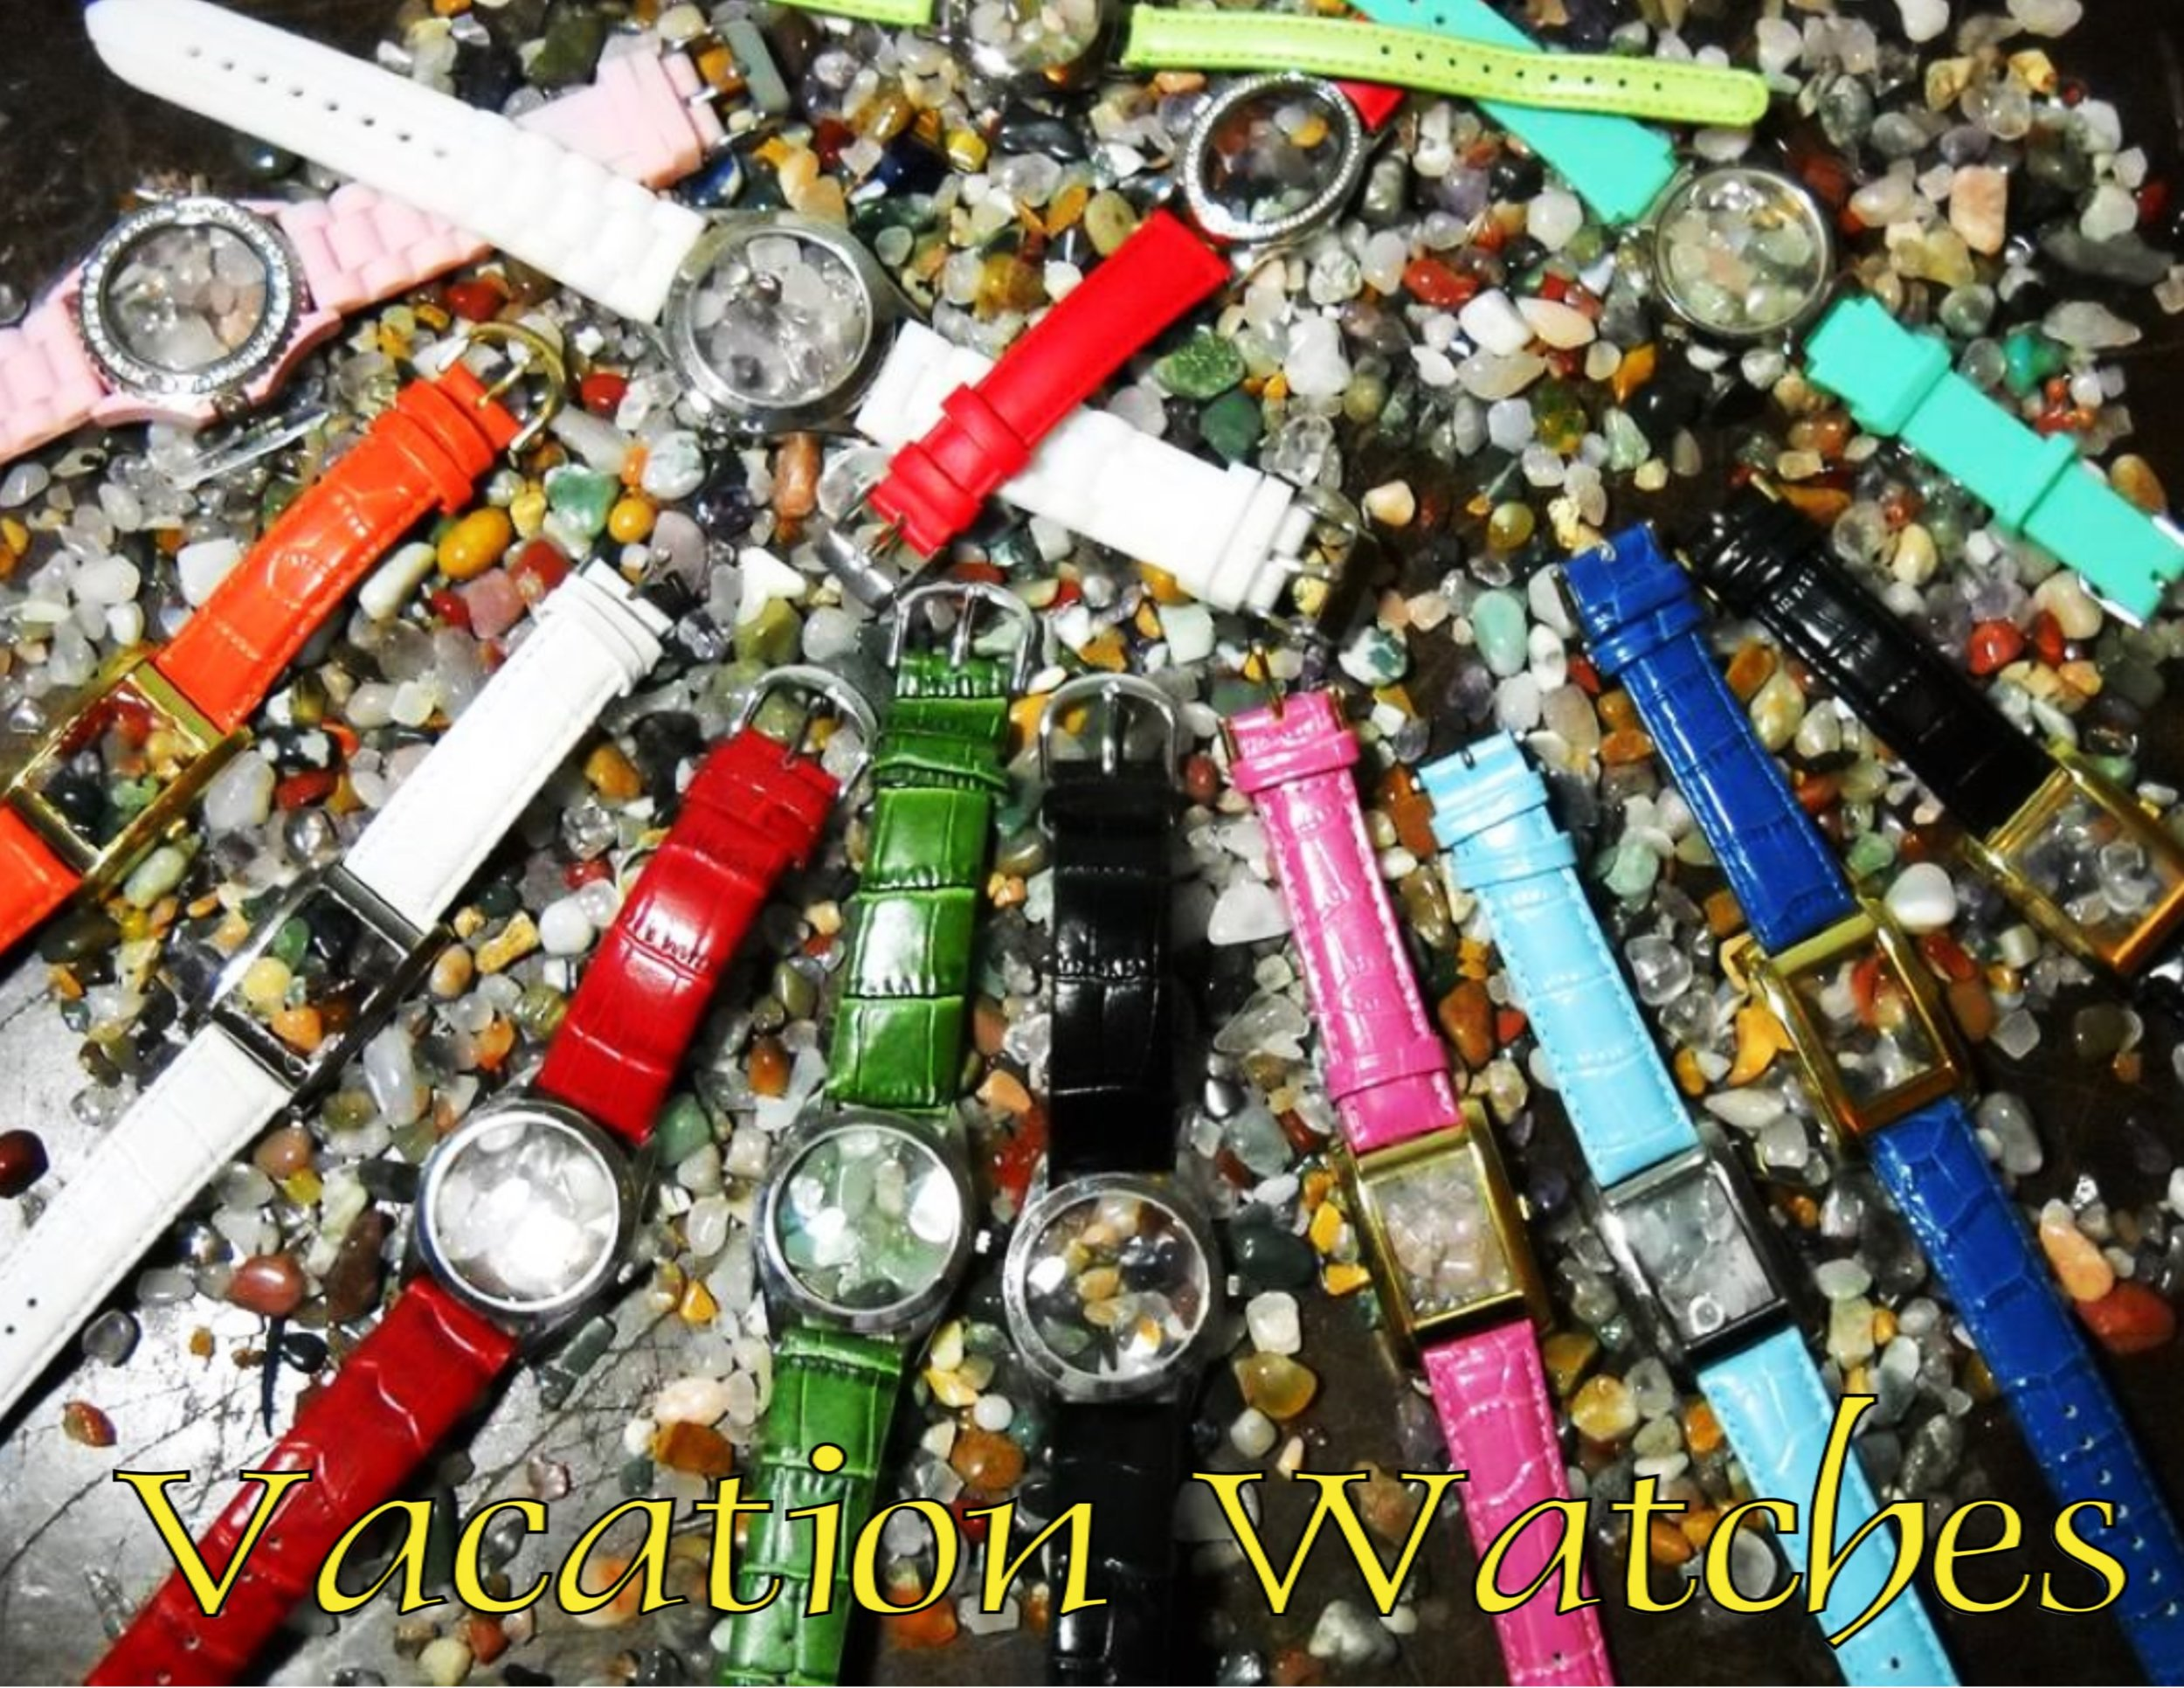 Vacation Watches.jpg